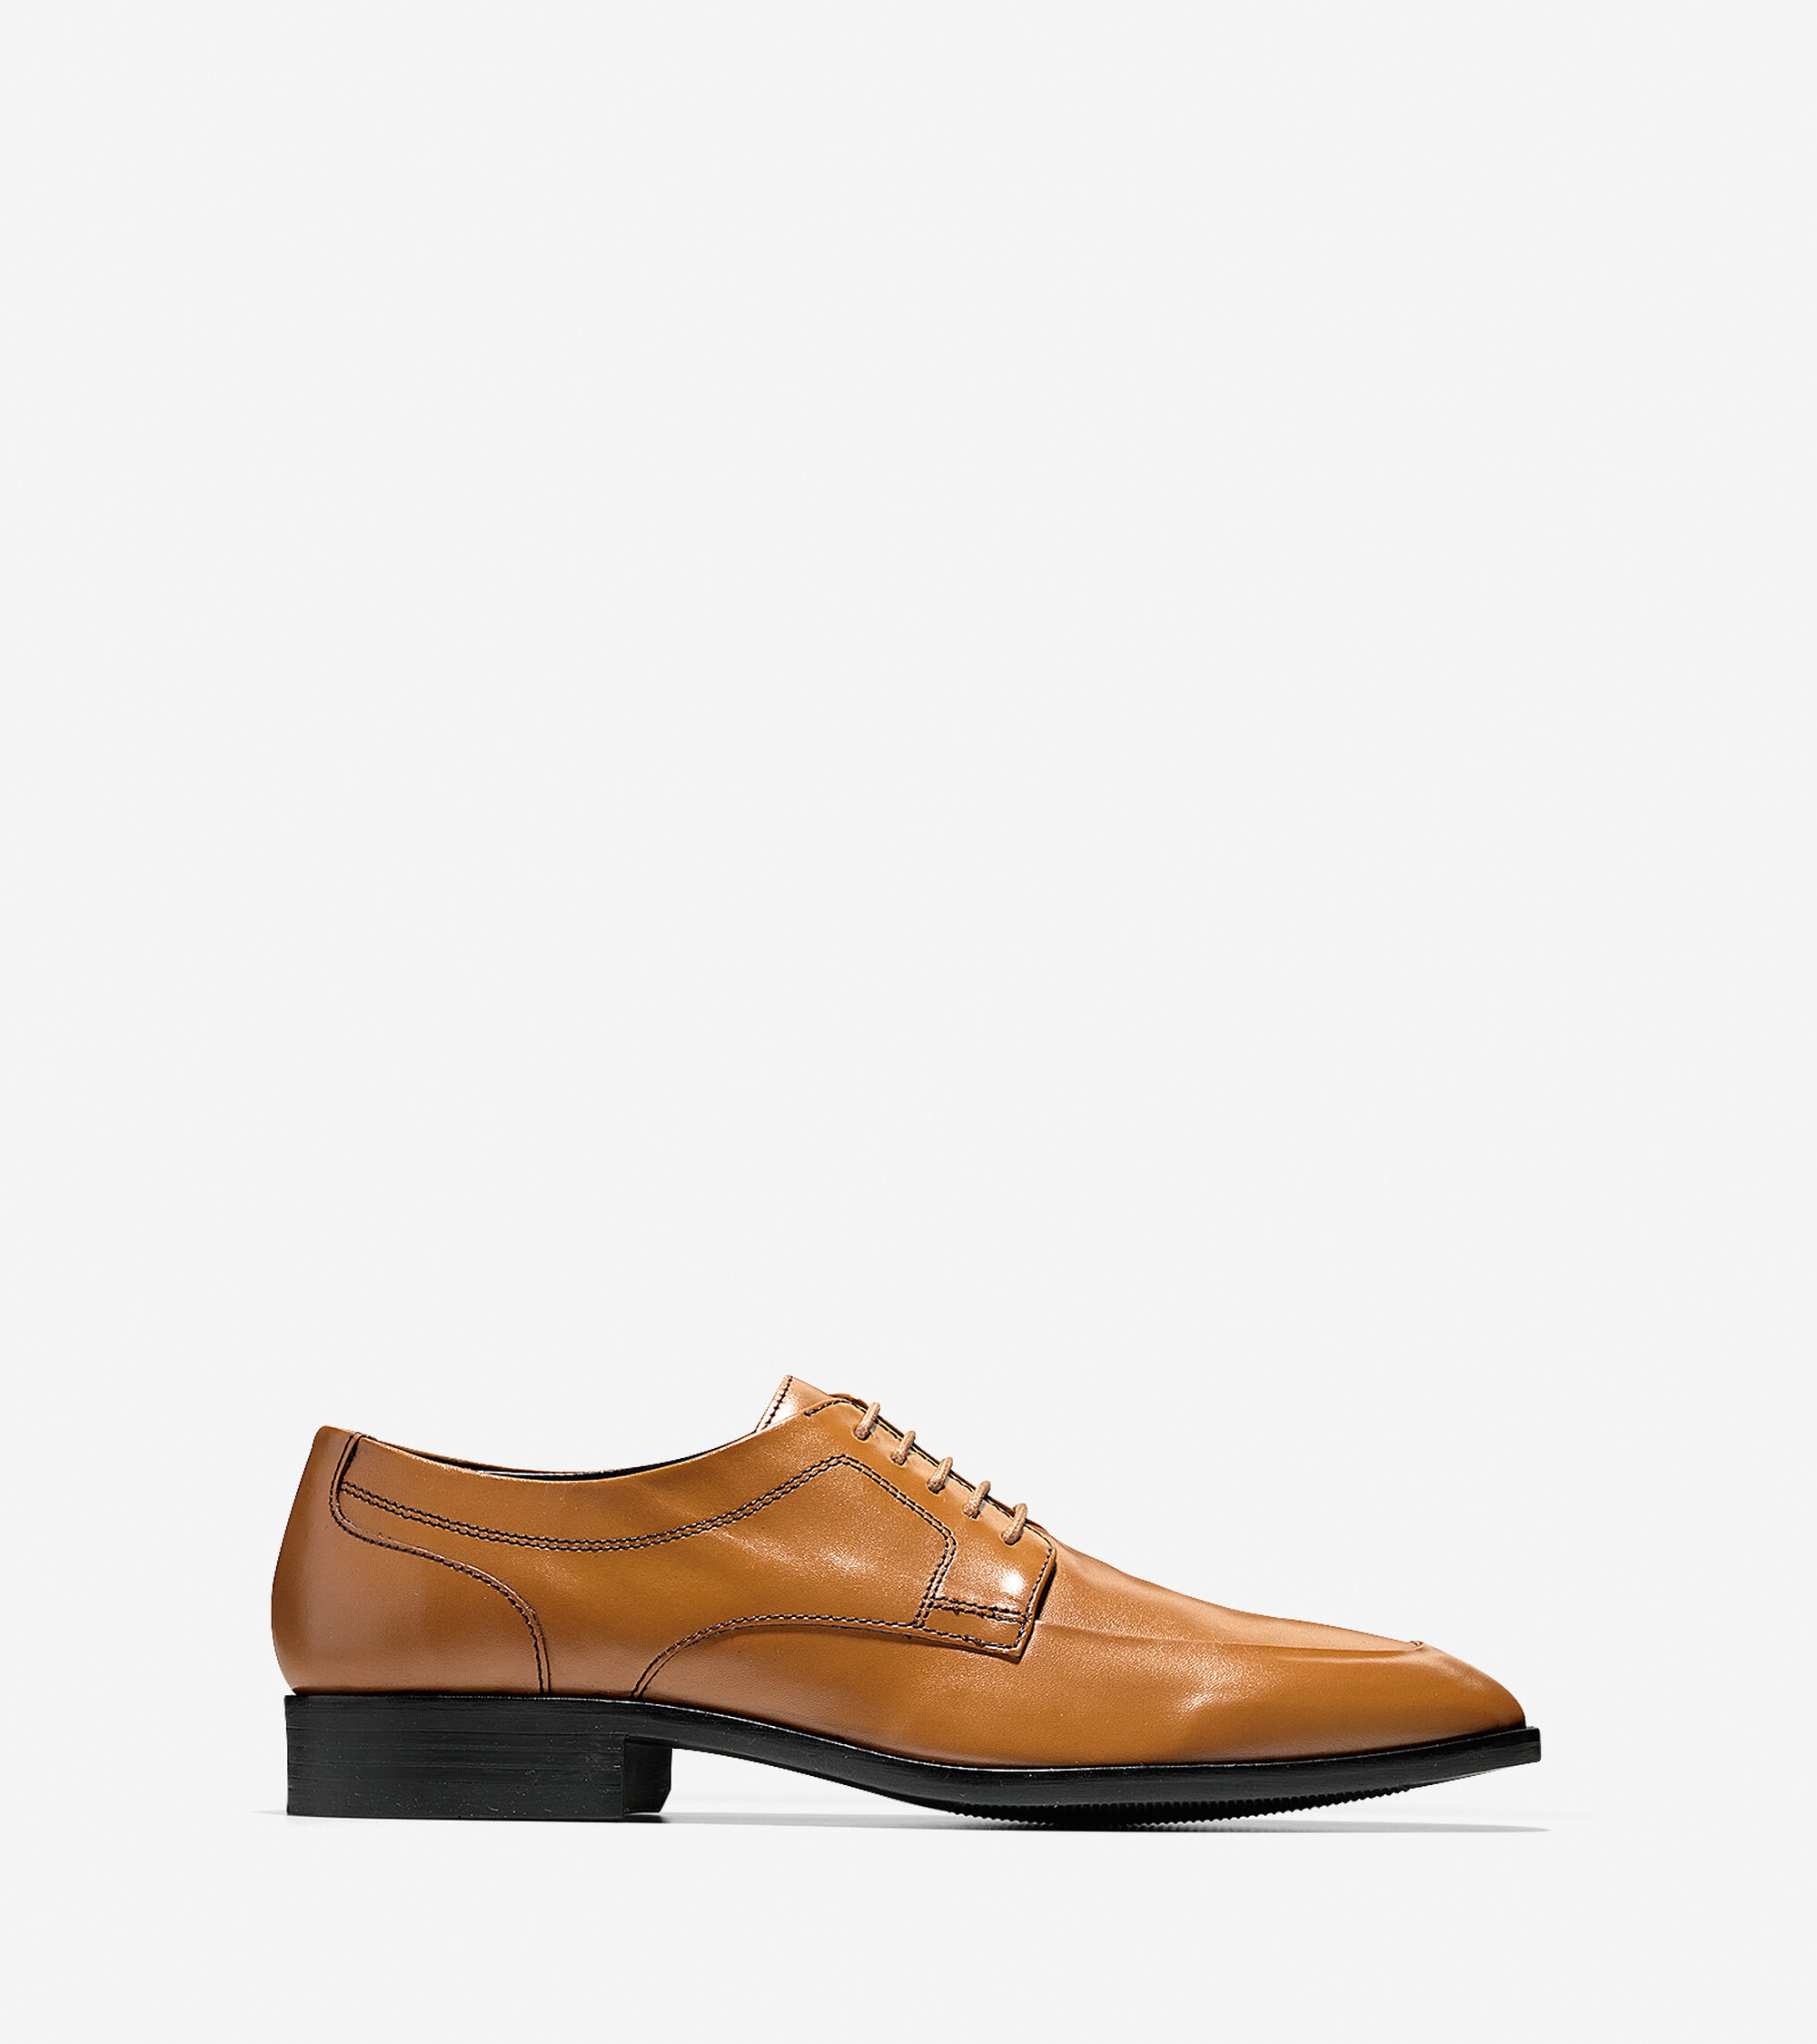 Oxfords > Kilgore Apron Oxford